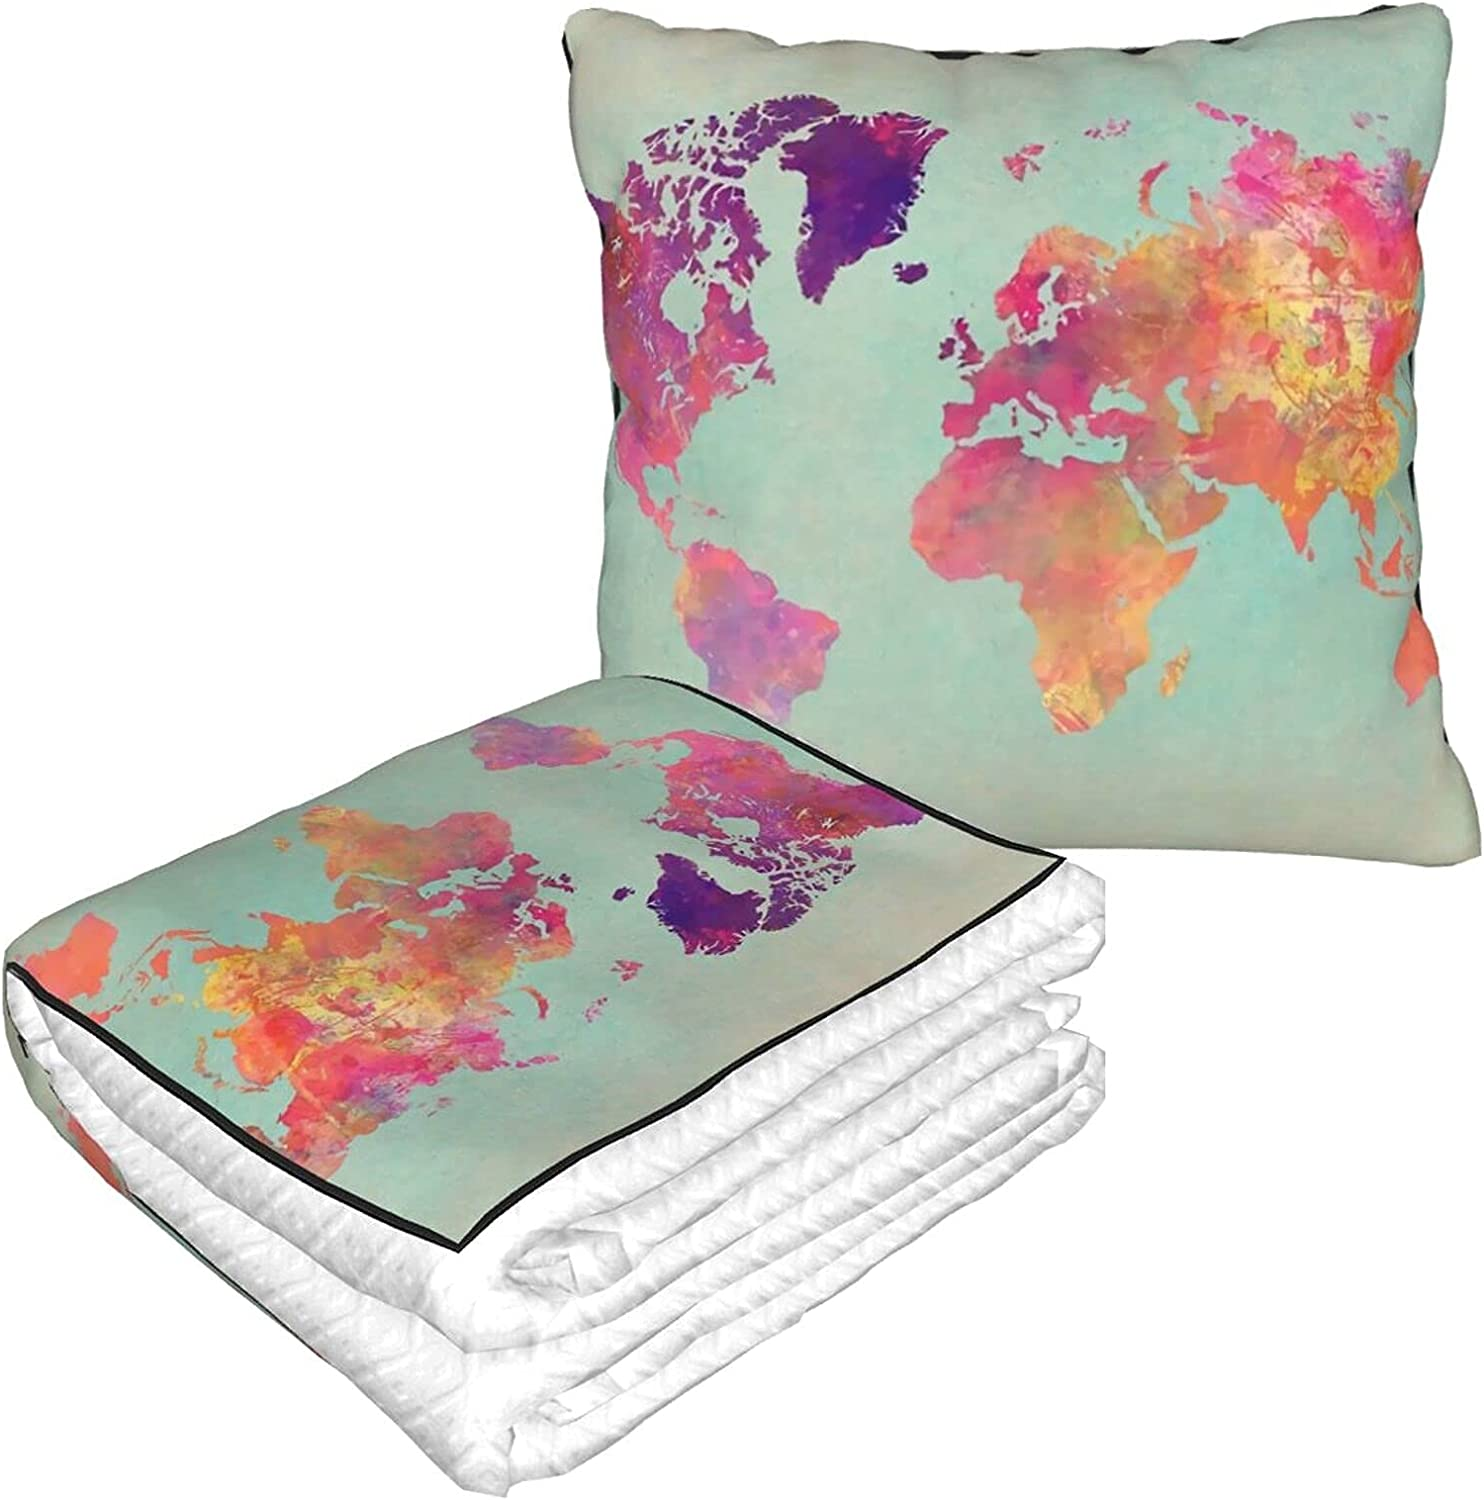 Max 41% OFF Travel Pillow Blanket for Airplanes #Ma #Worldmap Ranking TOP7 102 World Map